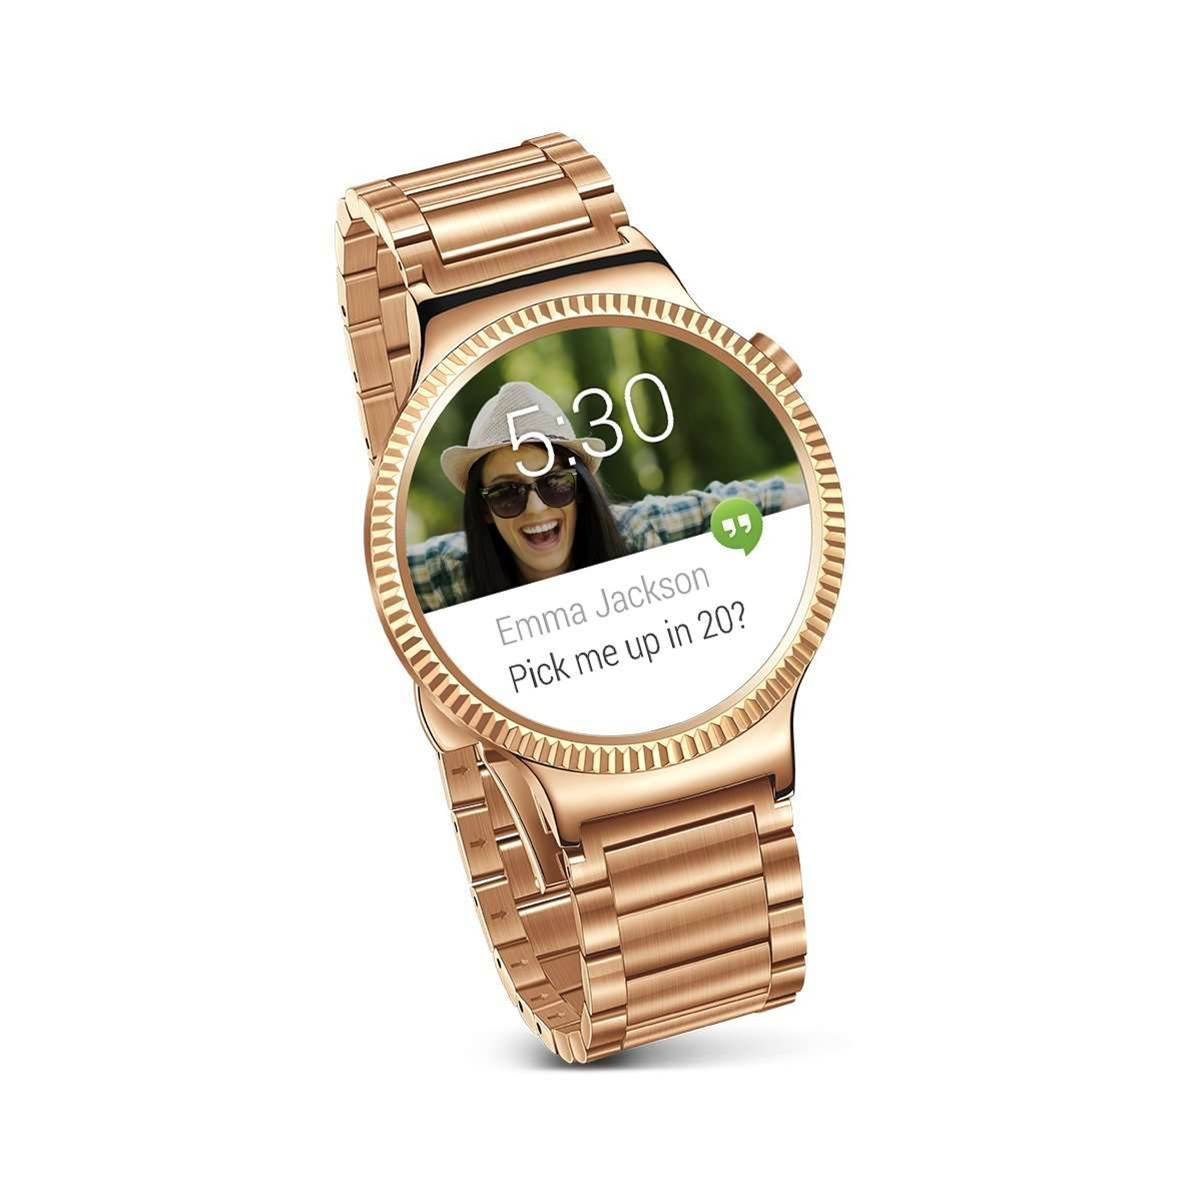 Huawei Watch Pre-Order Suggests Android Wear Coming To iOS